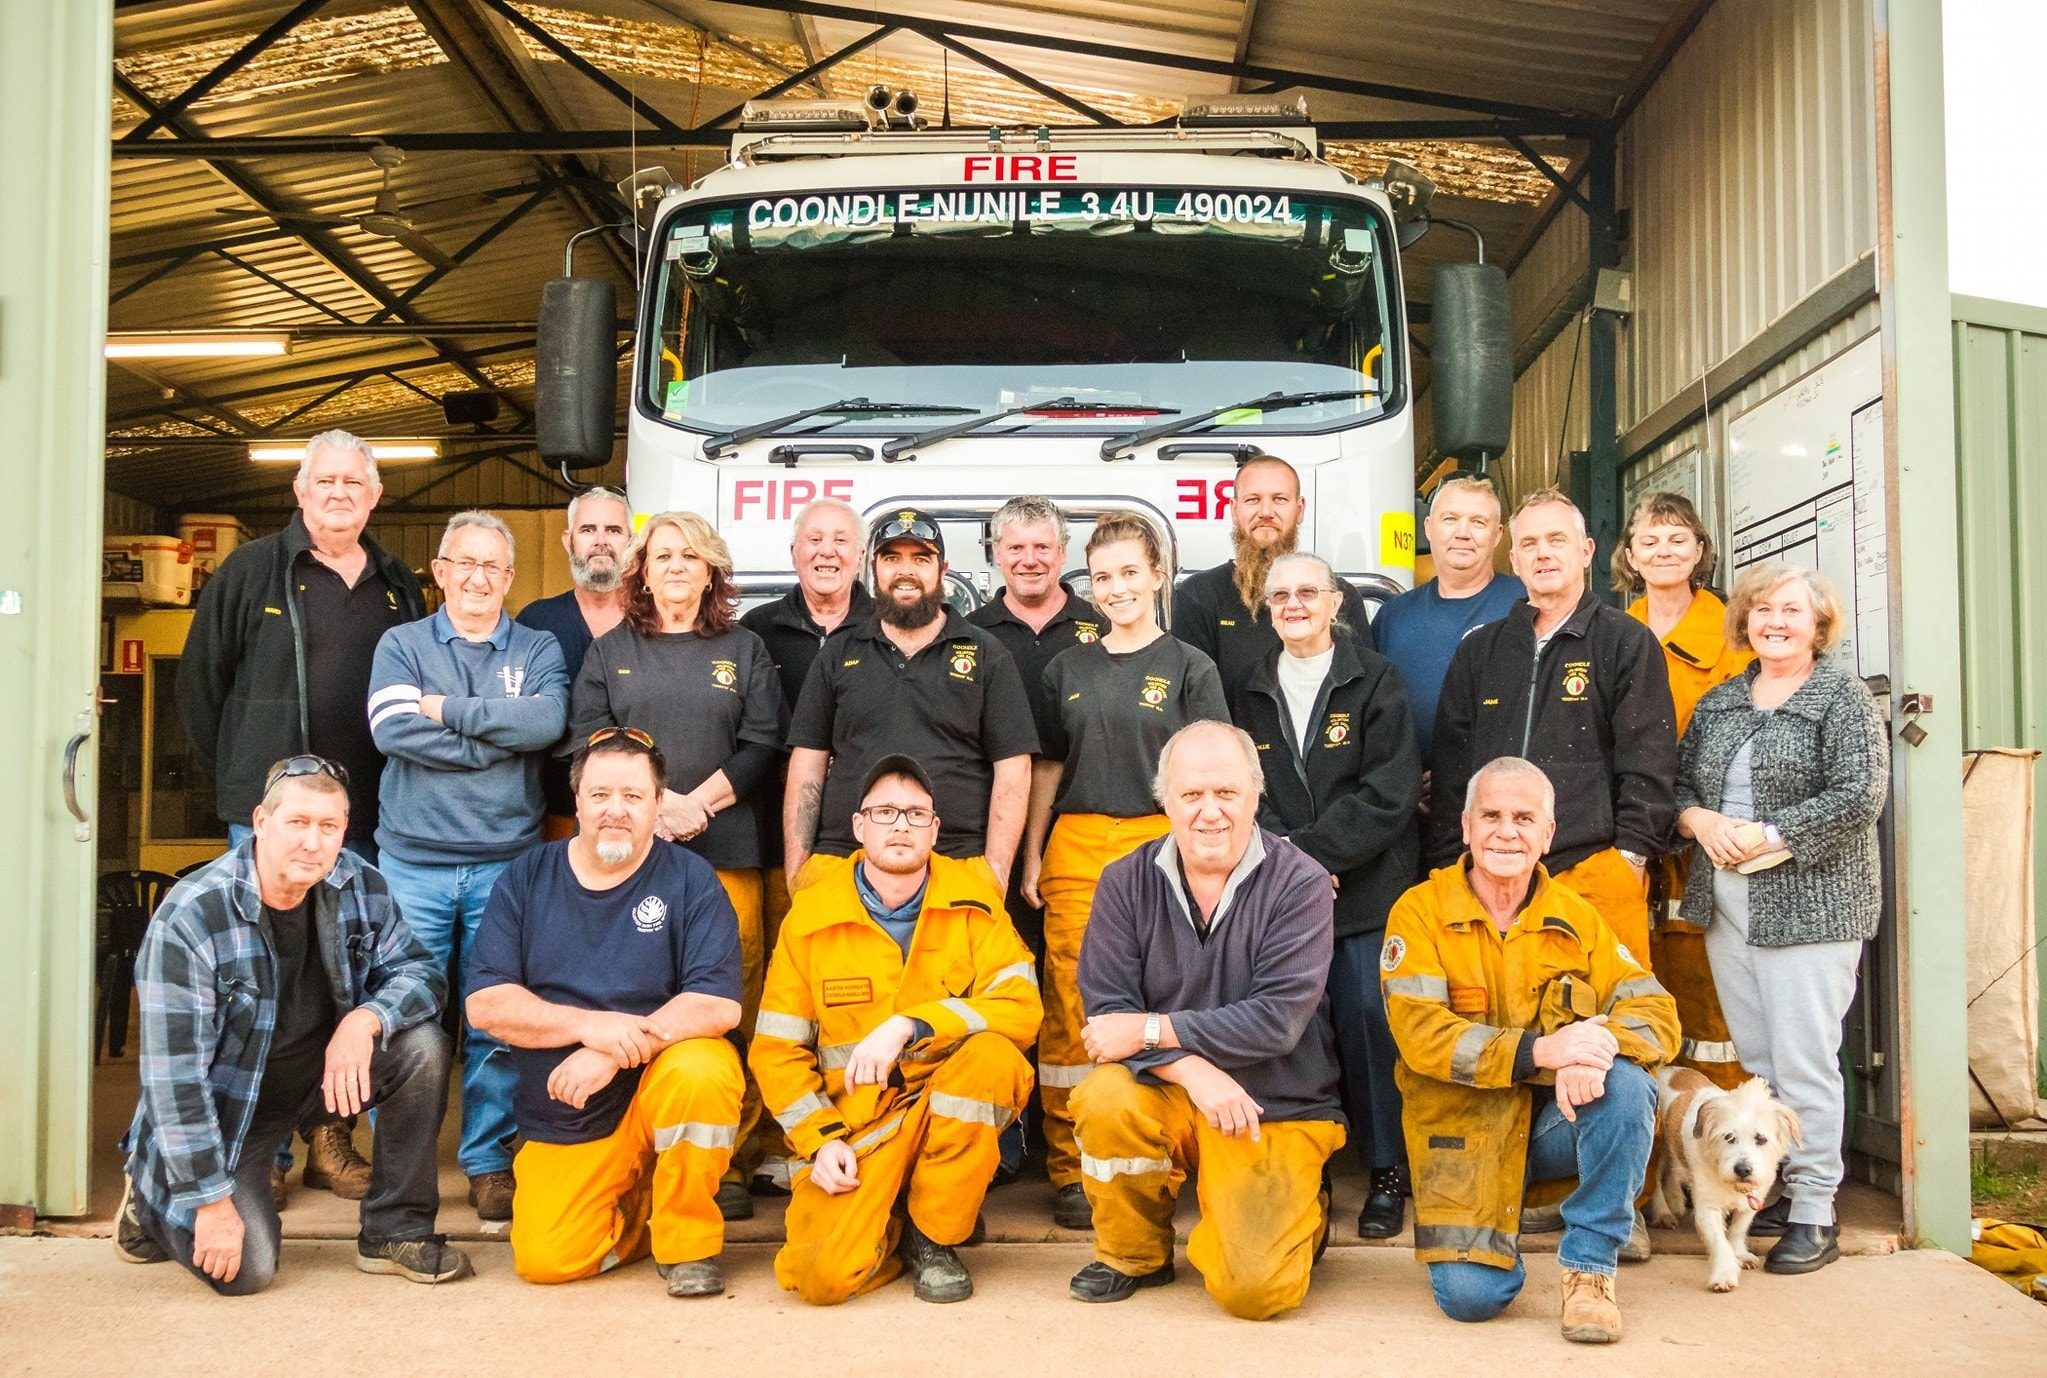 Coondle-Nunile Volunteer Bush Fire Brigade short but VERY sweet post says it all